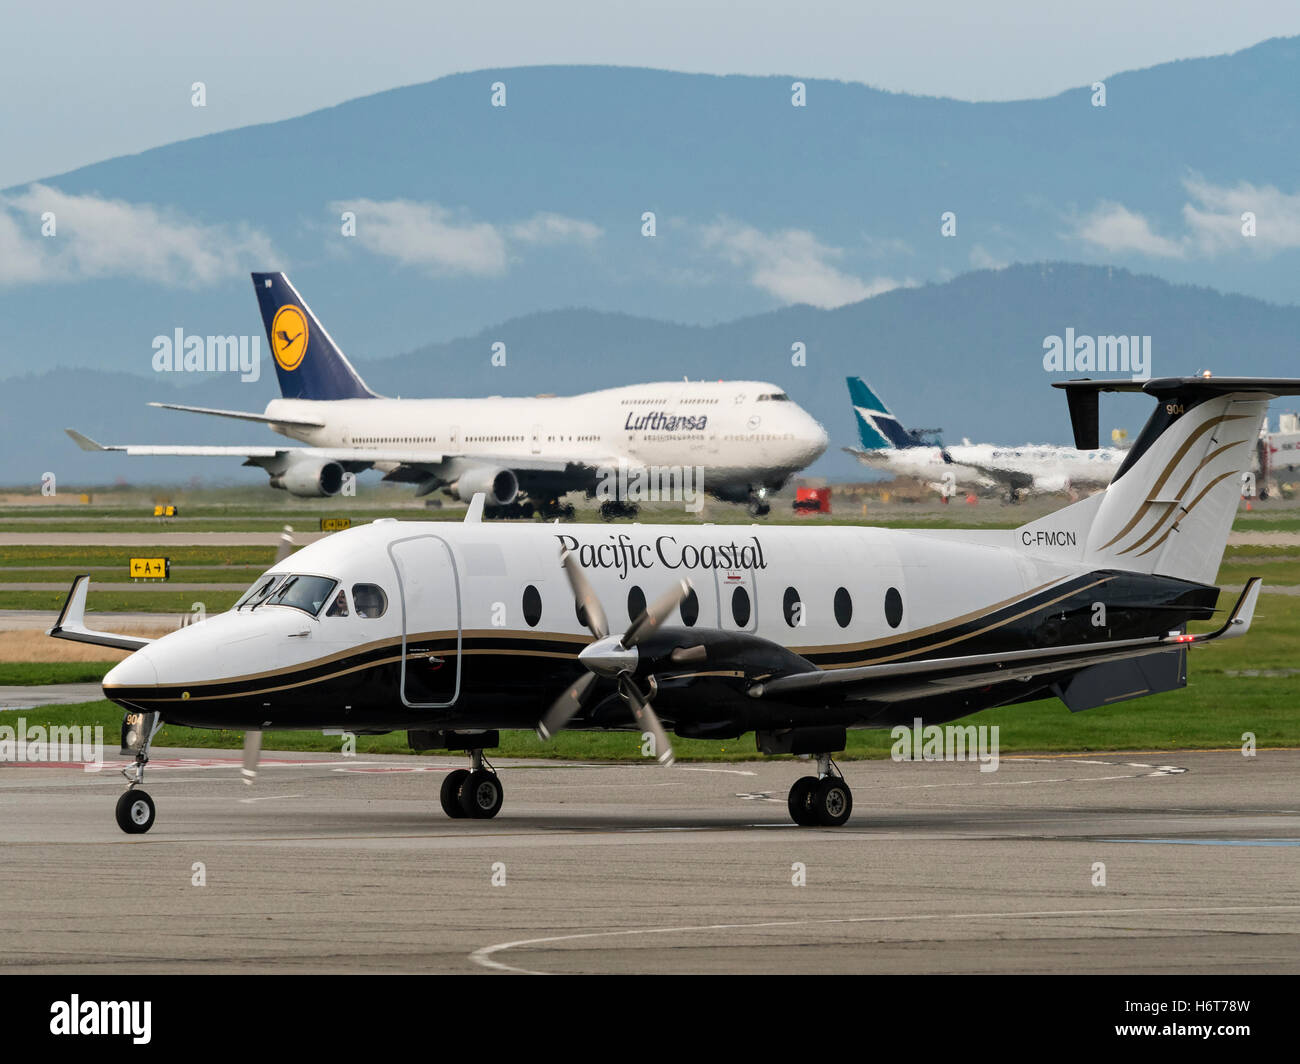 Pacific Coastal Airlines Beechcraft 1900D C-FMCN Vancouver International Airport airplane tarmac traffic scene - Stock Image